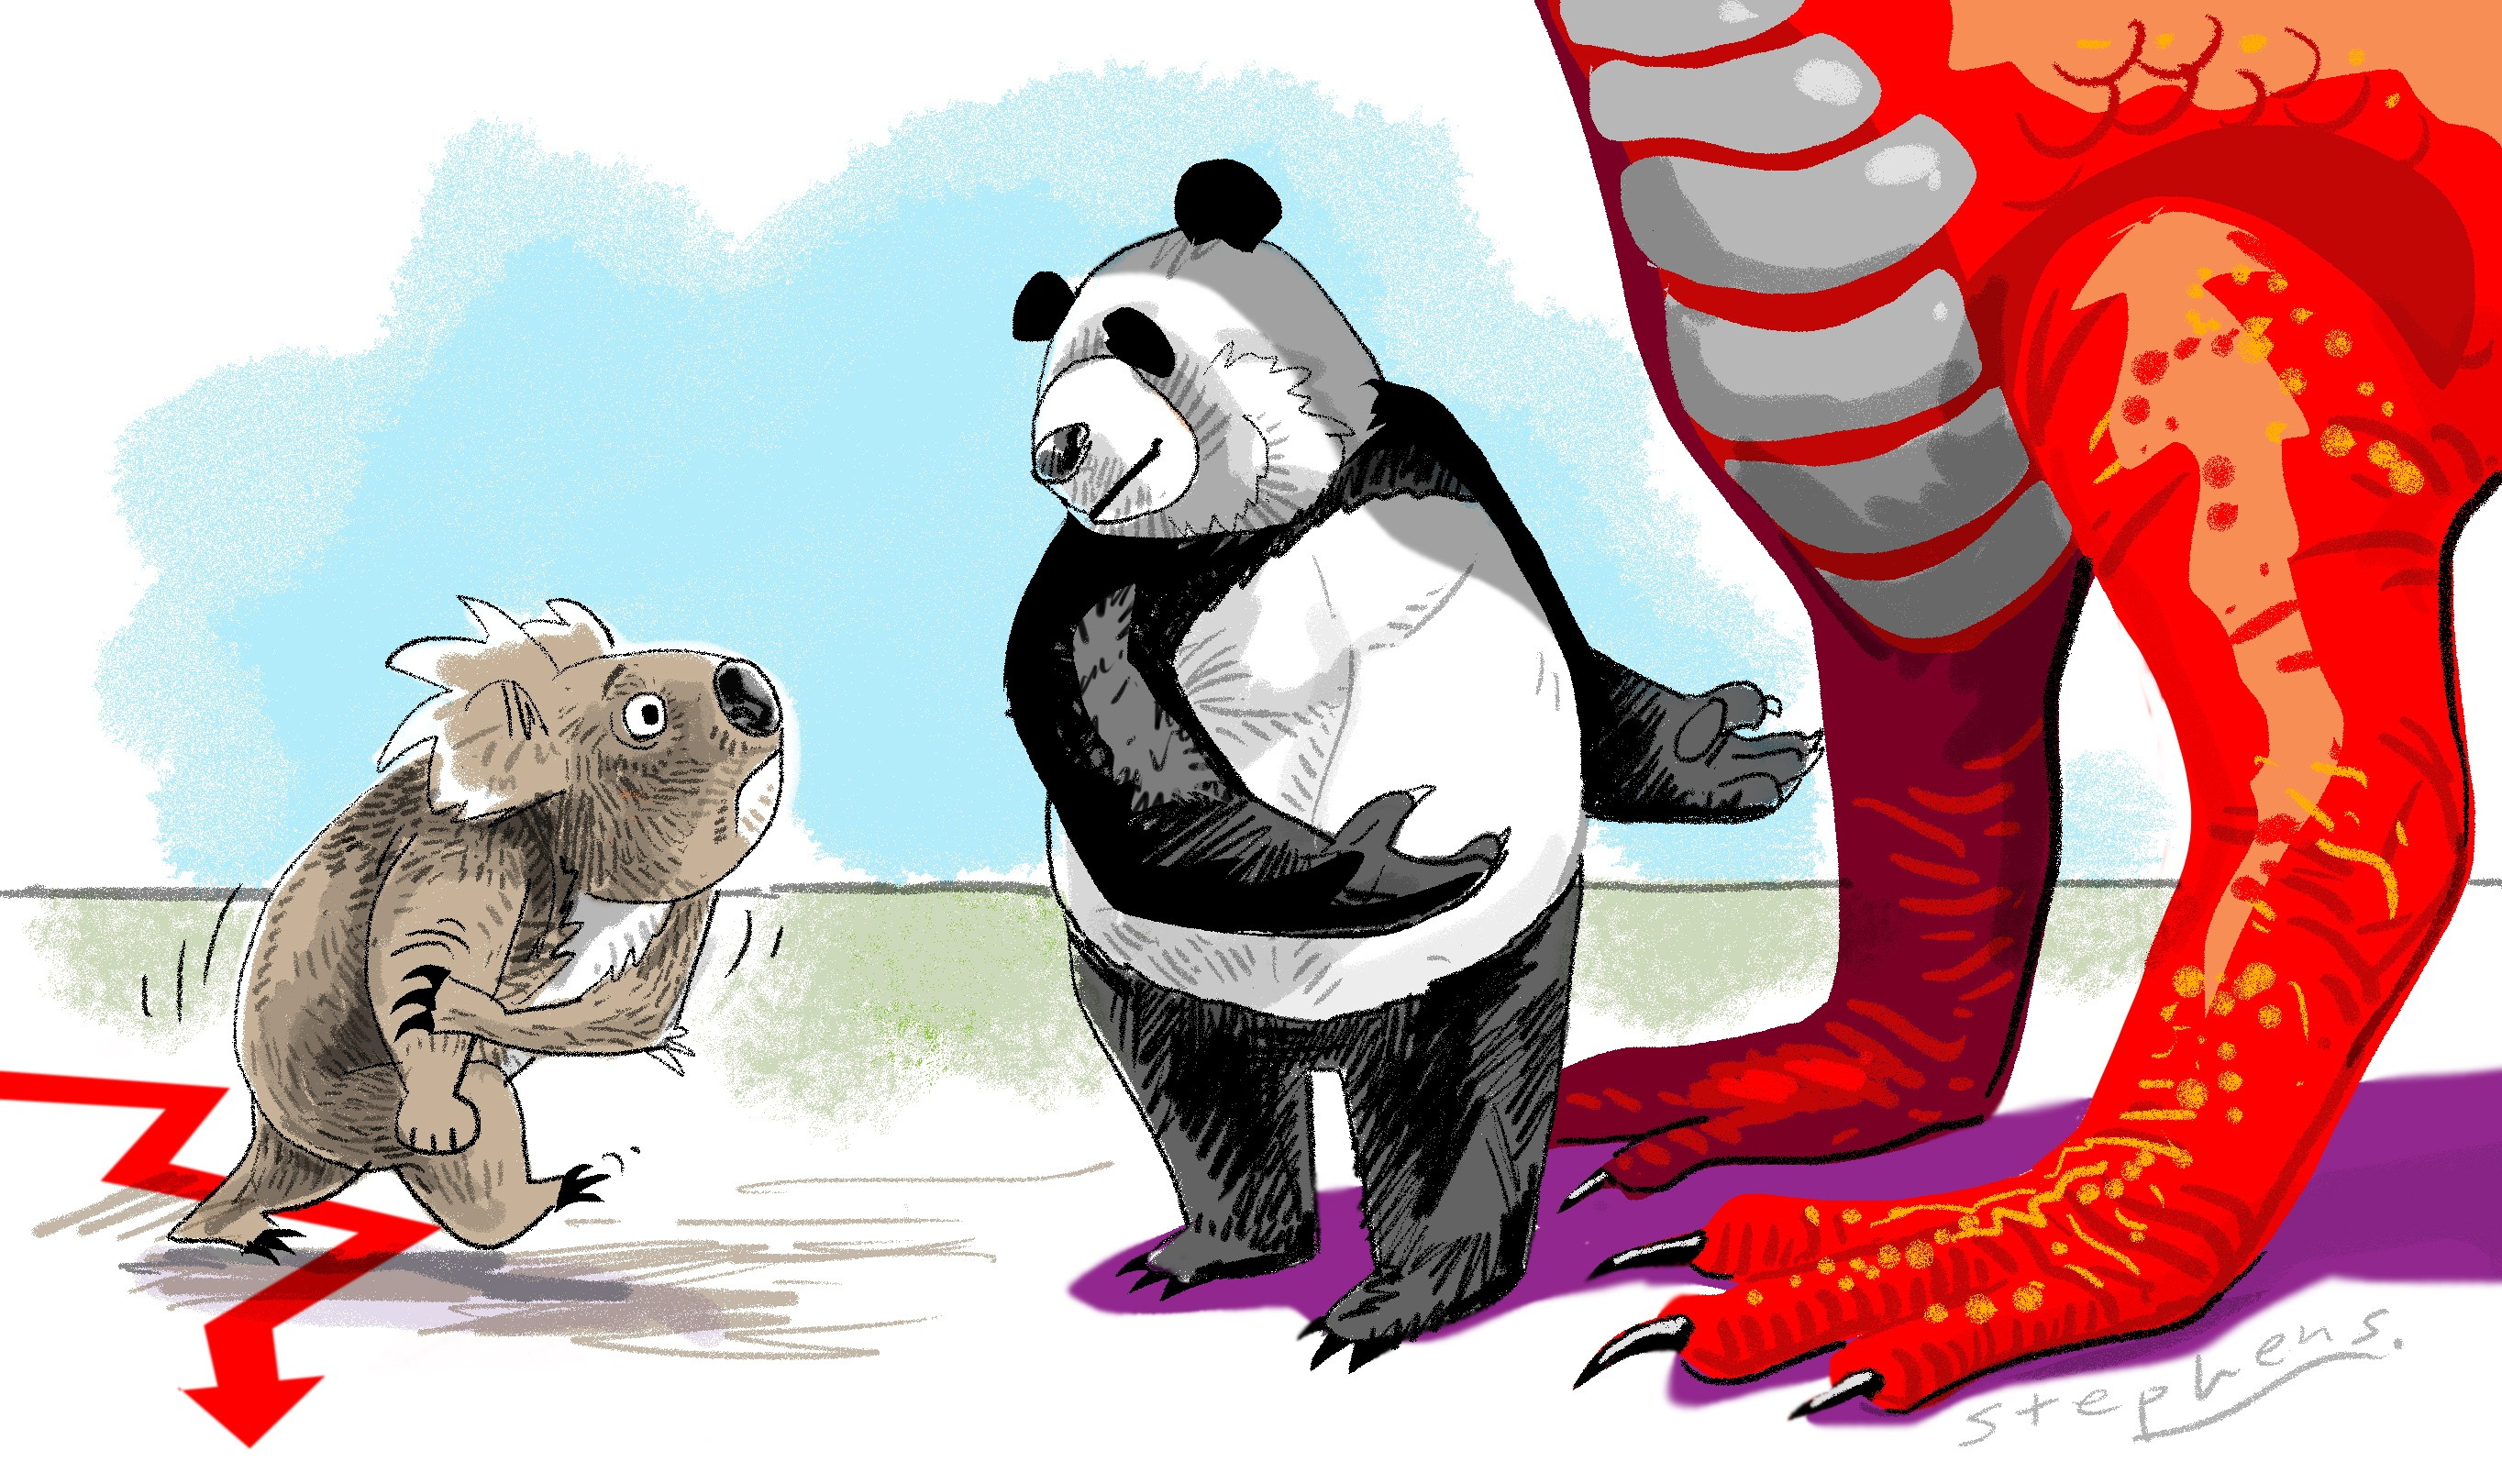 As Australia pushes back against China, the Western world is.